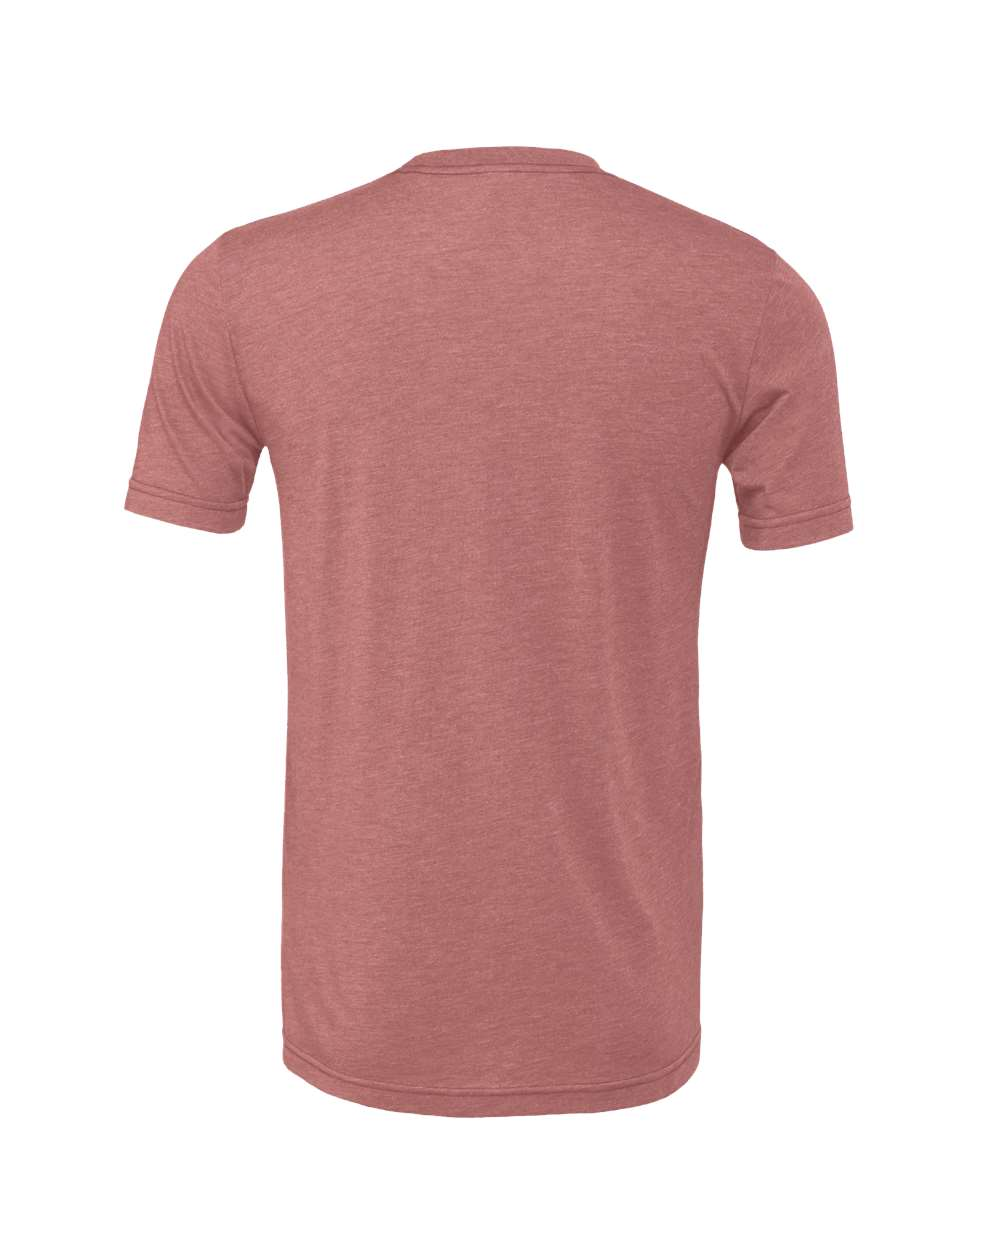 Bella-Canvas-Unisex-Short-Sleeve-Heather-Jersey-T-Shirt-3001c2-up-to-5XL thumbnail 76